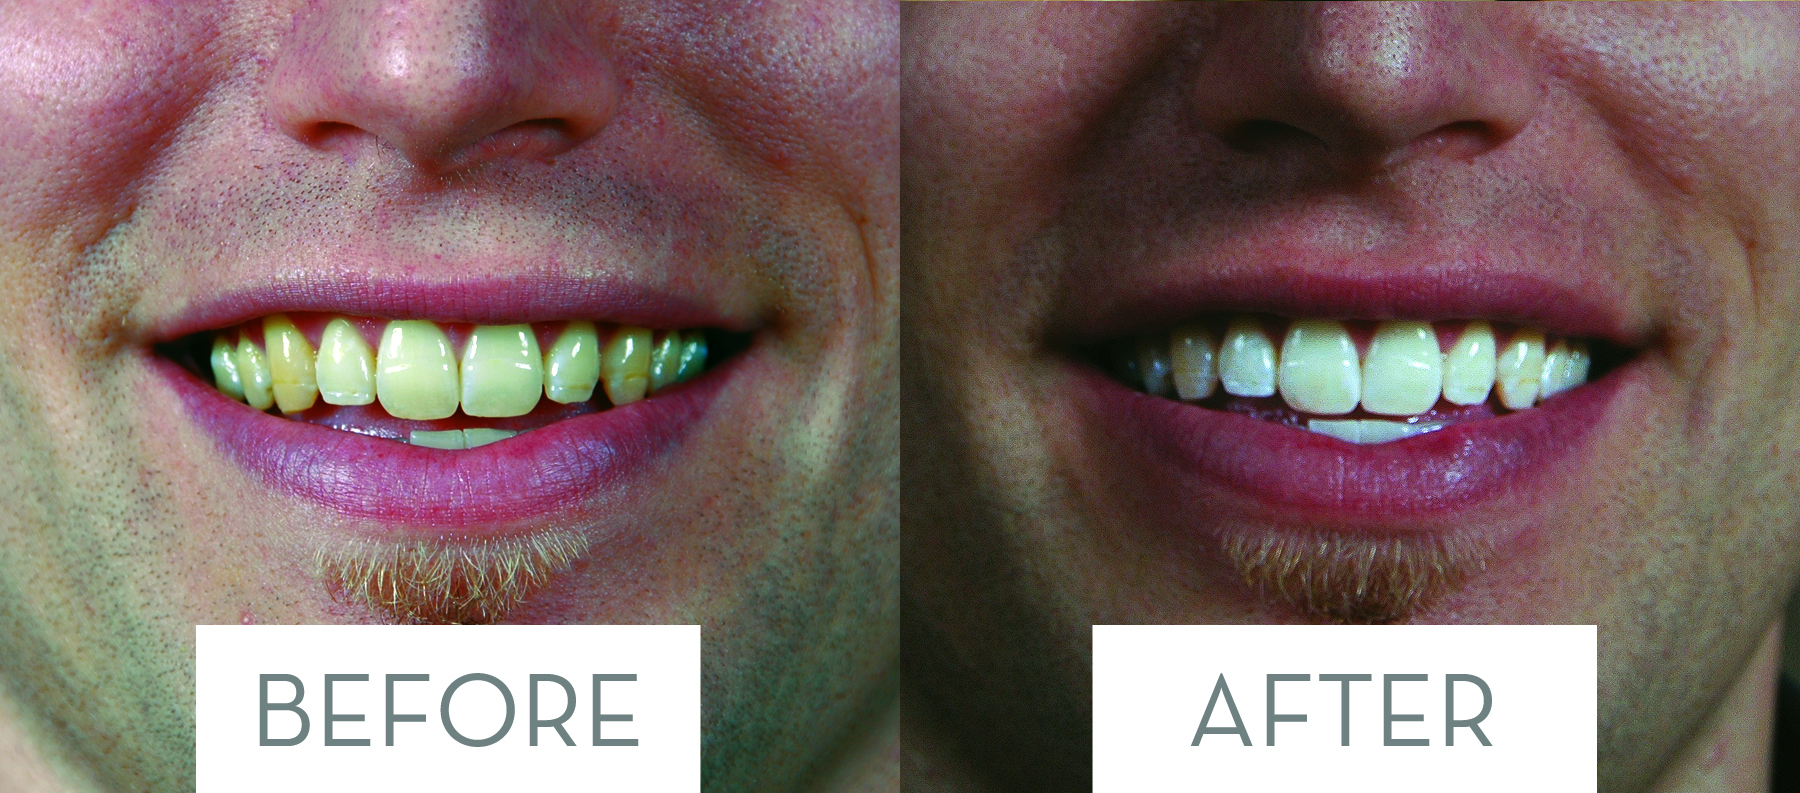 Before-After-closeup6.jpg